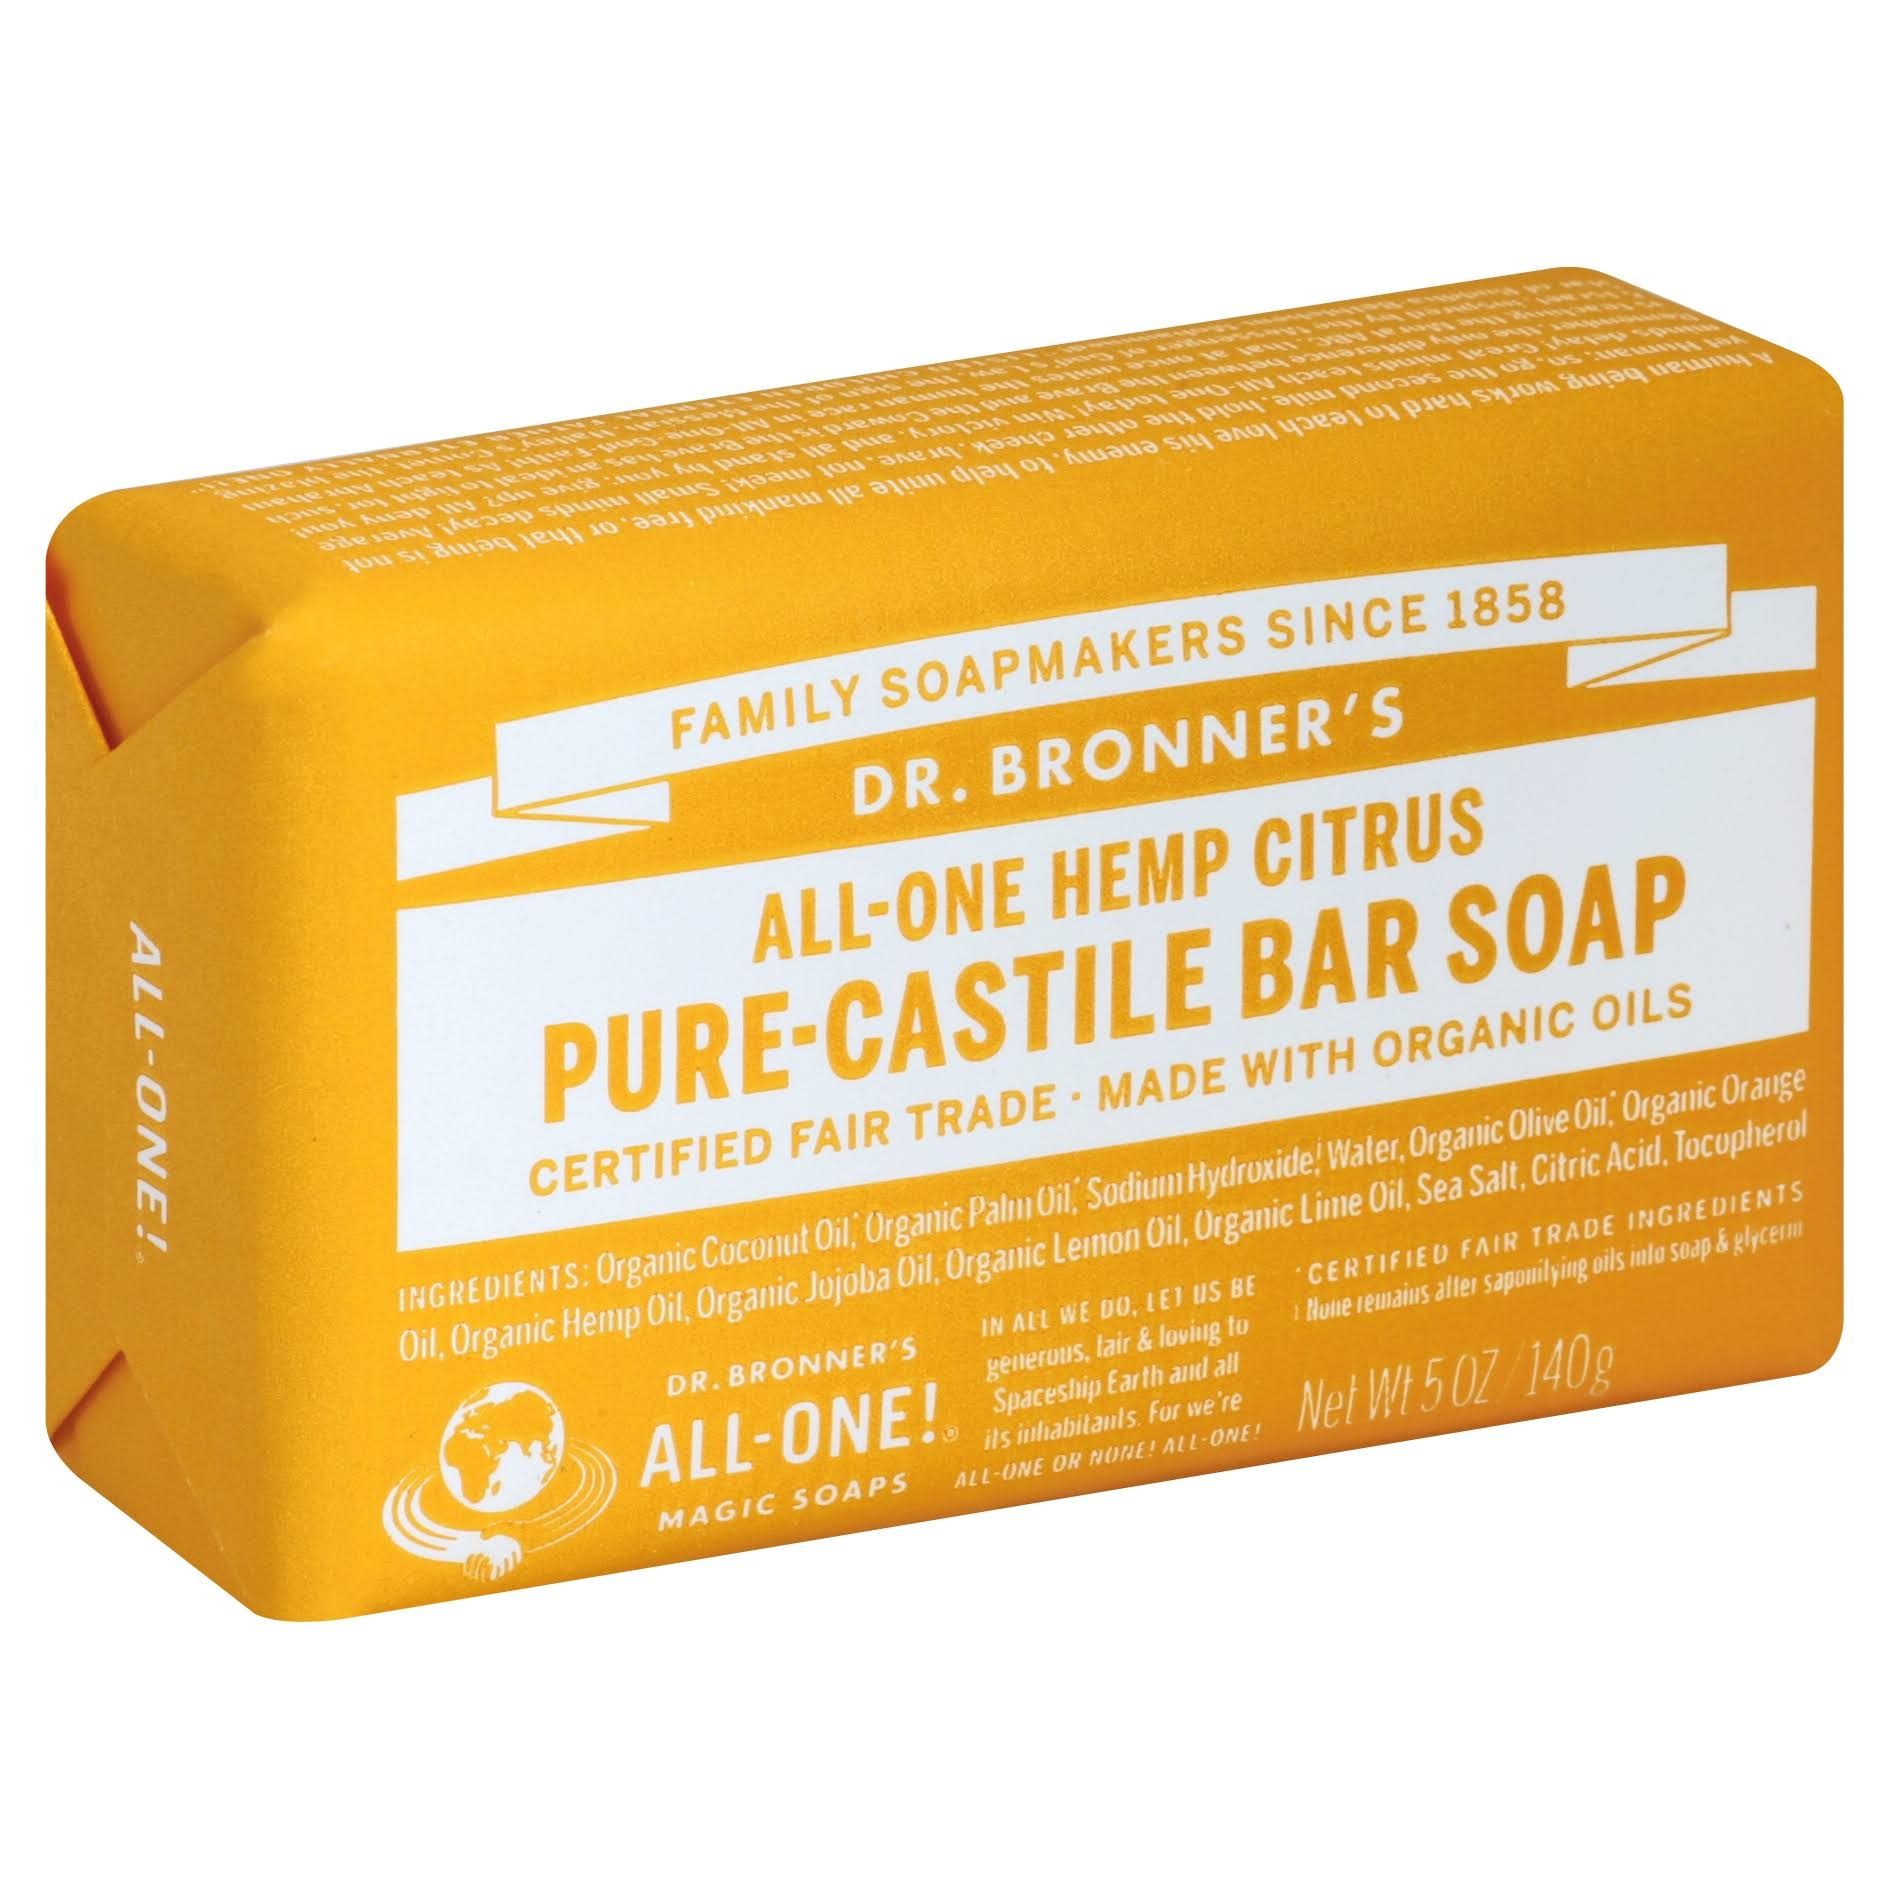 Dr. Bronner Magic Soap Bar Citrus Orange - 140g